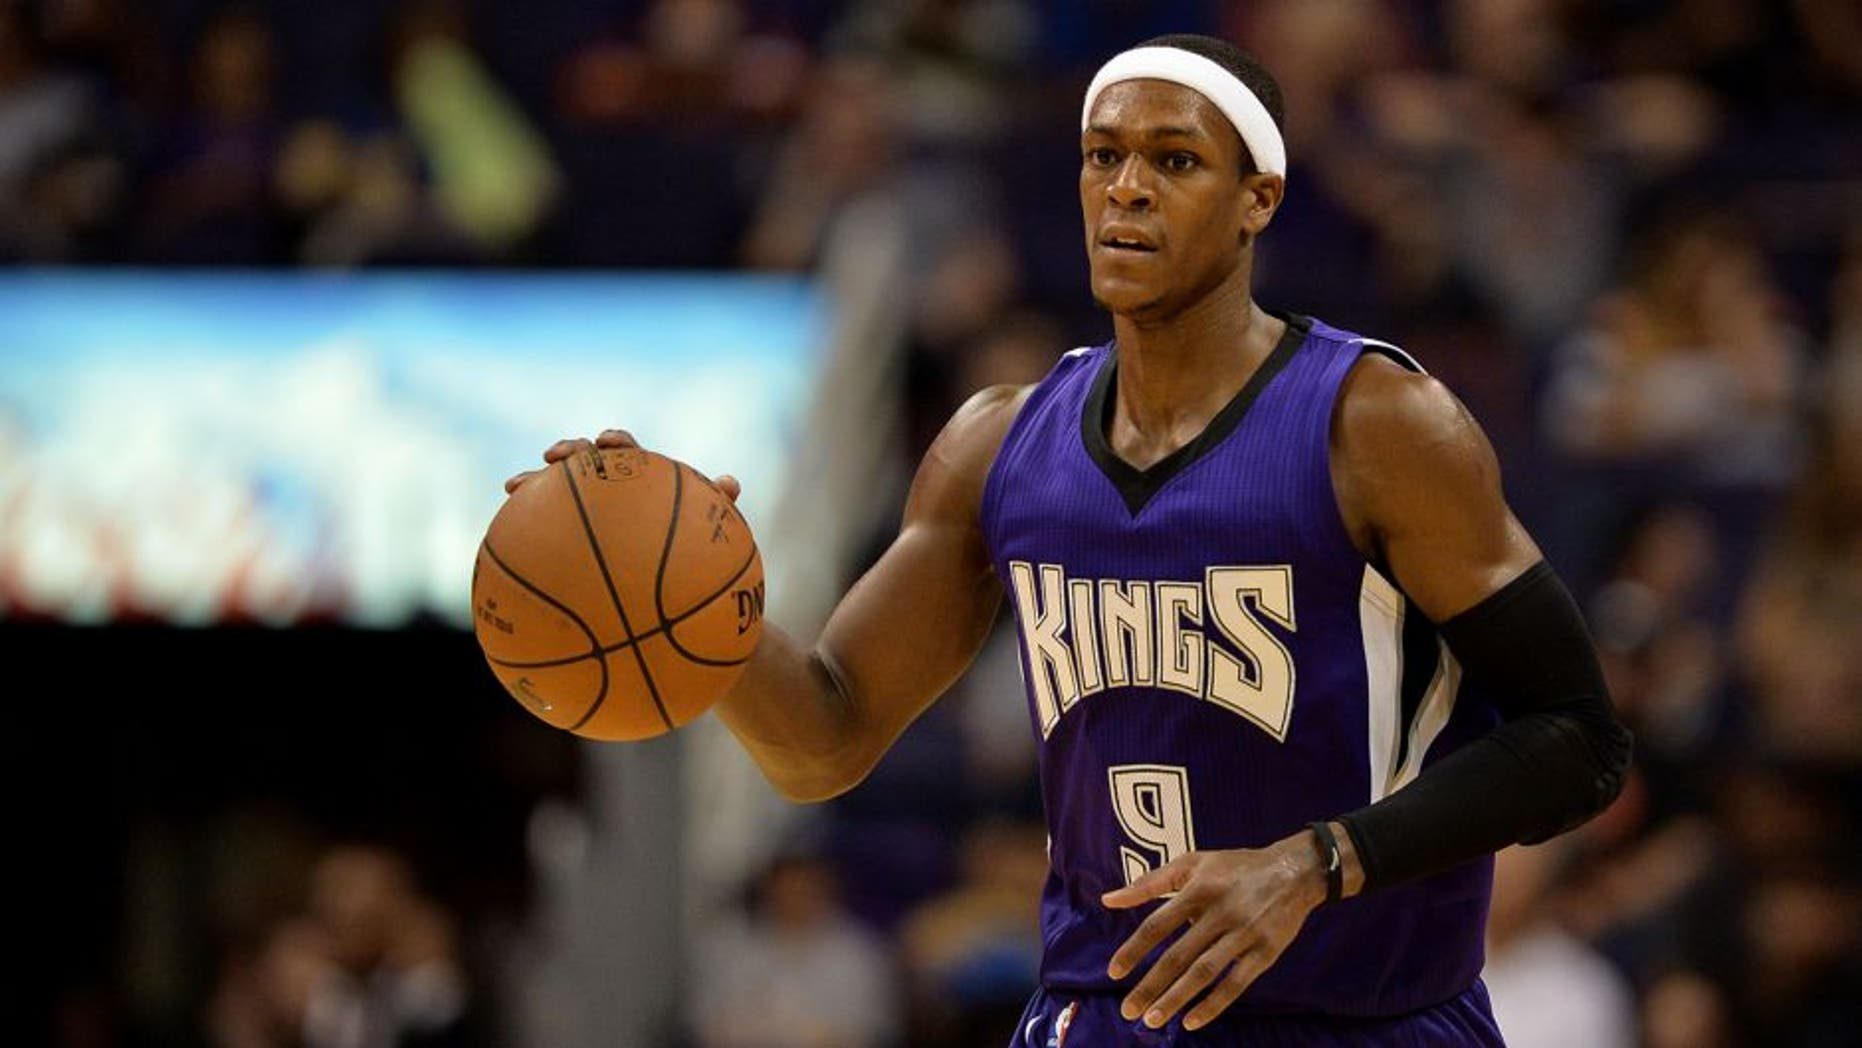 Oct 7, 2015; Phoenix, AZ, USA; Sacramento Kings guard Rajon Rondo (9) dribbles the basketball up the court in the second half against the Phoenix Suns at Talking Stick Resort Arena. The Suns defeat the Kings 102-98. Mandatory Credit: Jennifer Stewart-USA TODAY Sports